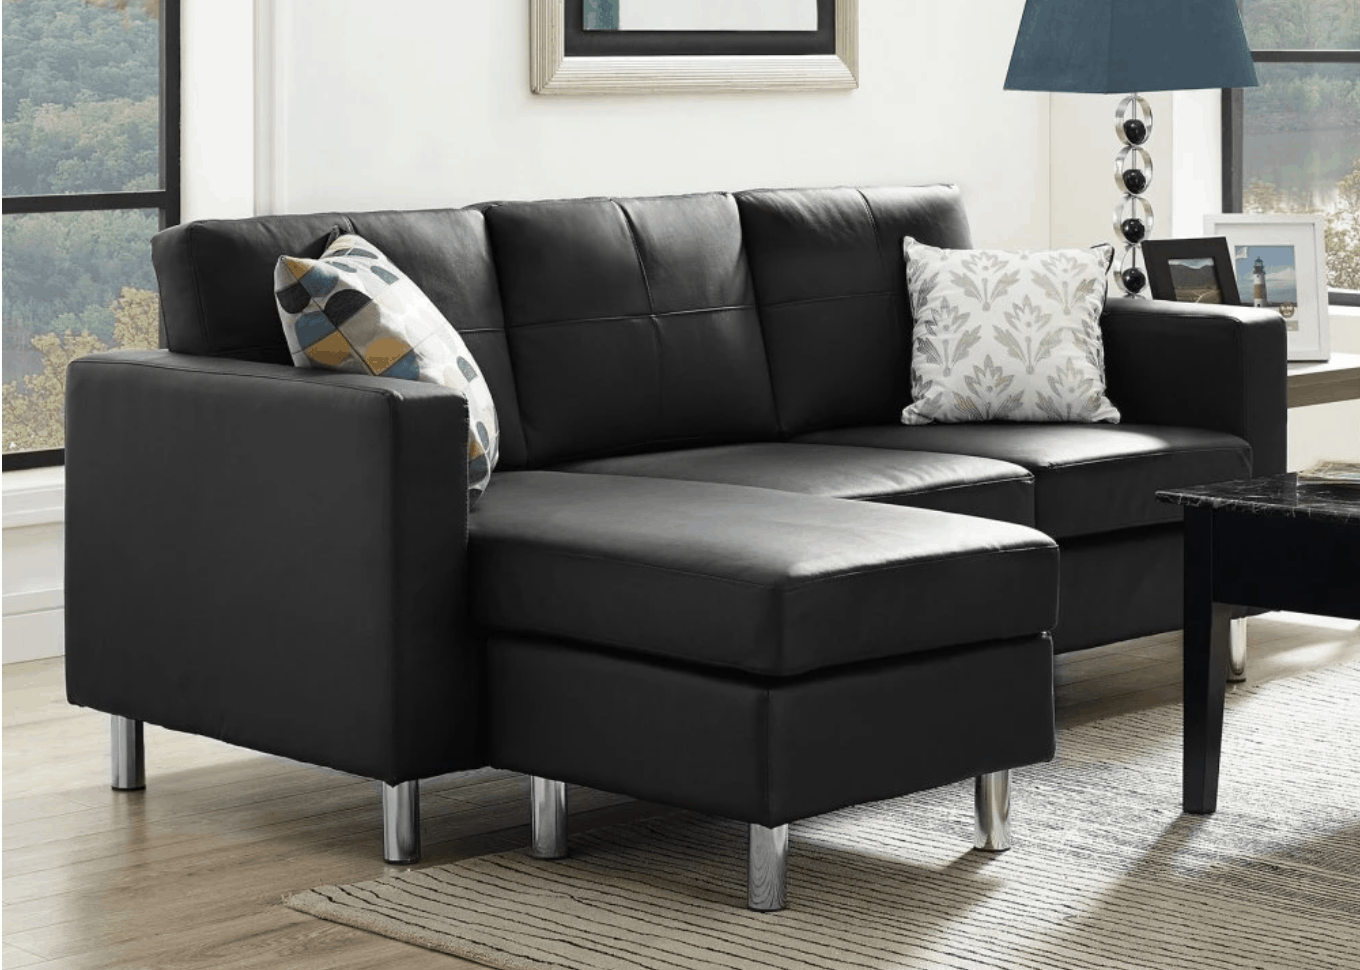 Nice Space Saving Black Sectional Sofa For Small Spaces